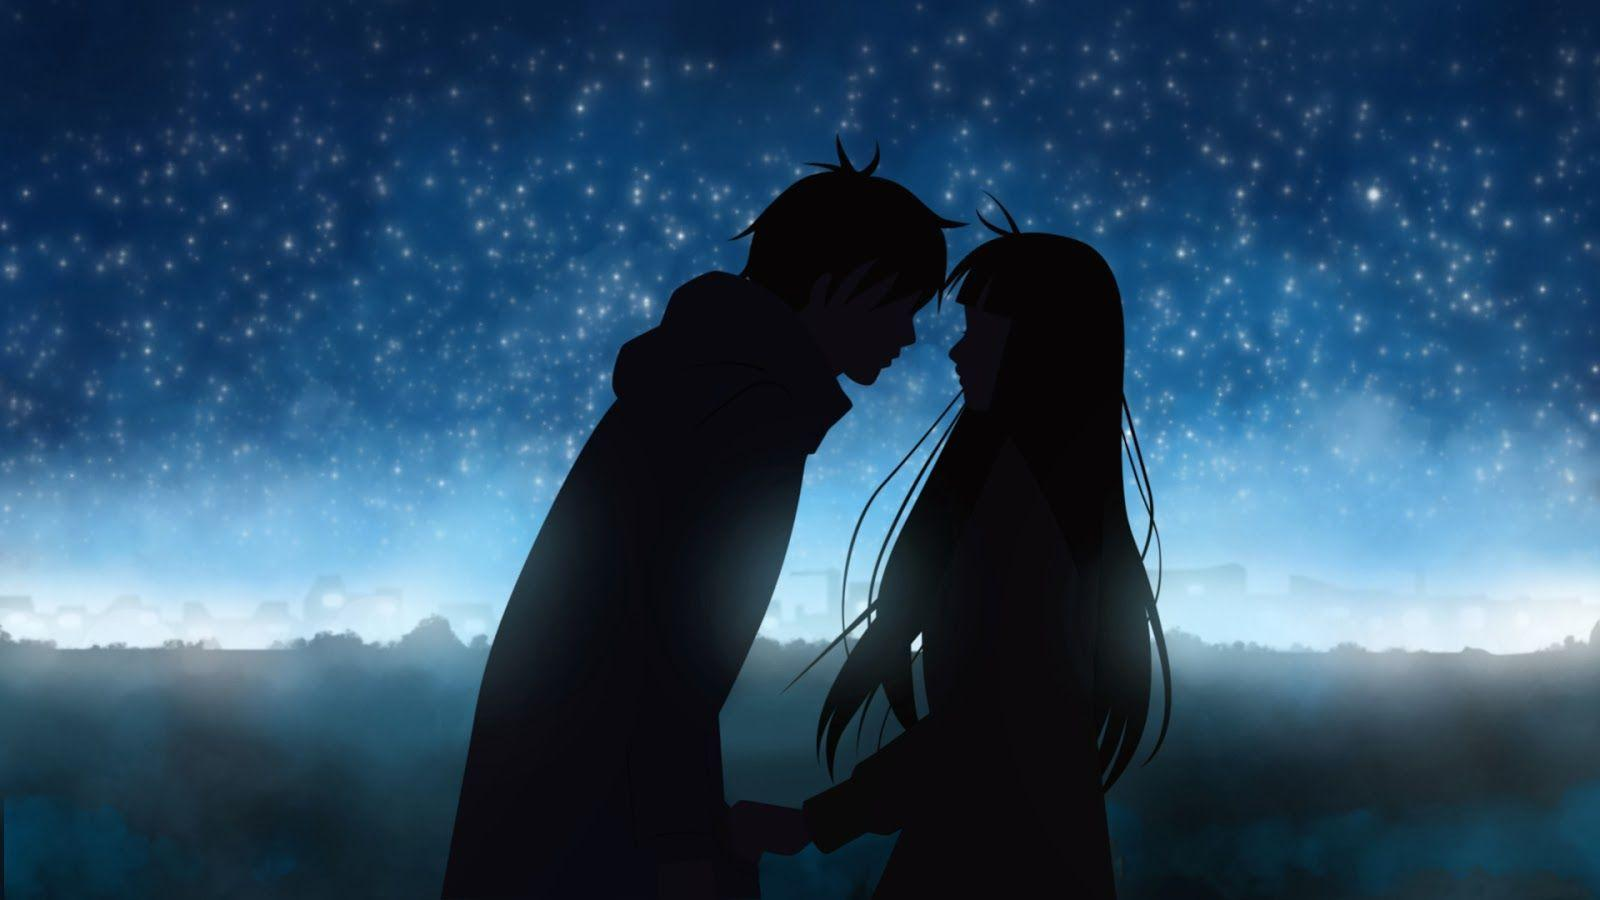 Love couple Wallpaper For Pc : Anime Love Wallpapers - Wallpaper cave